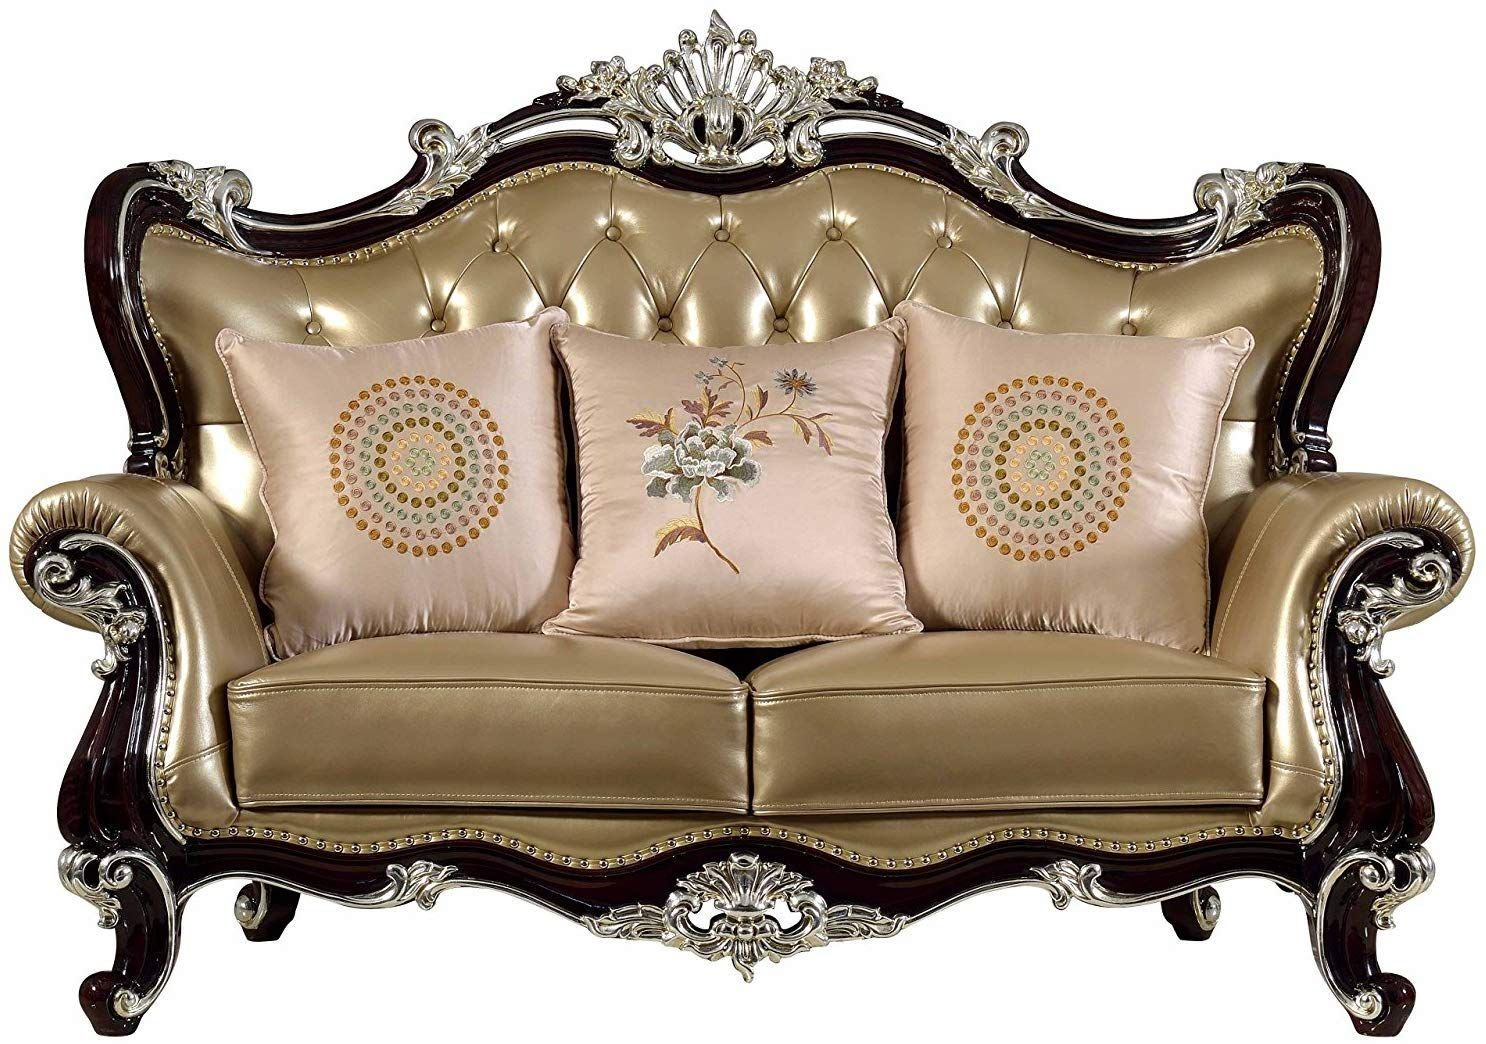 Amazon Com Ma Xiaoying Leather Sofas Antique Furniture Solid Wood Frame Carved Living Room Furniture Sofas Furniture Design Traditional Living Room Furniture